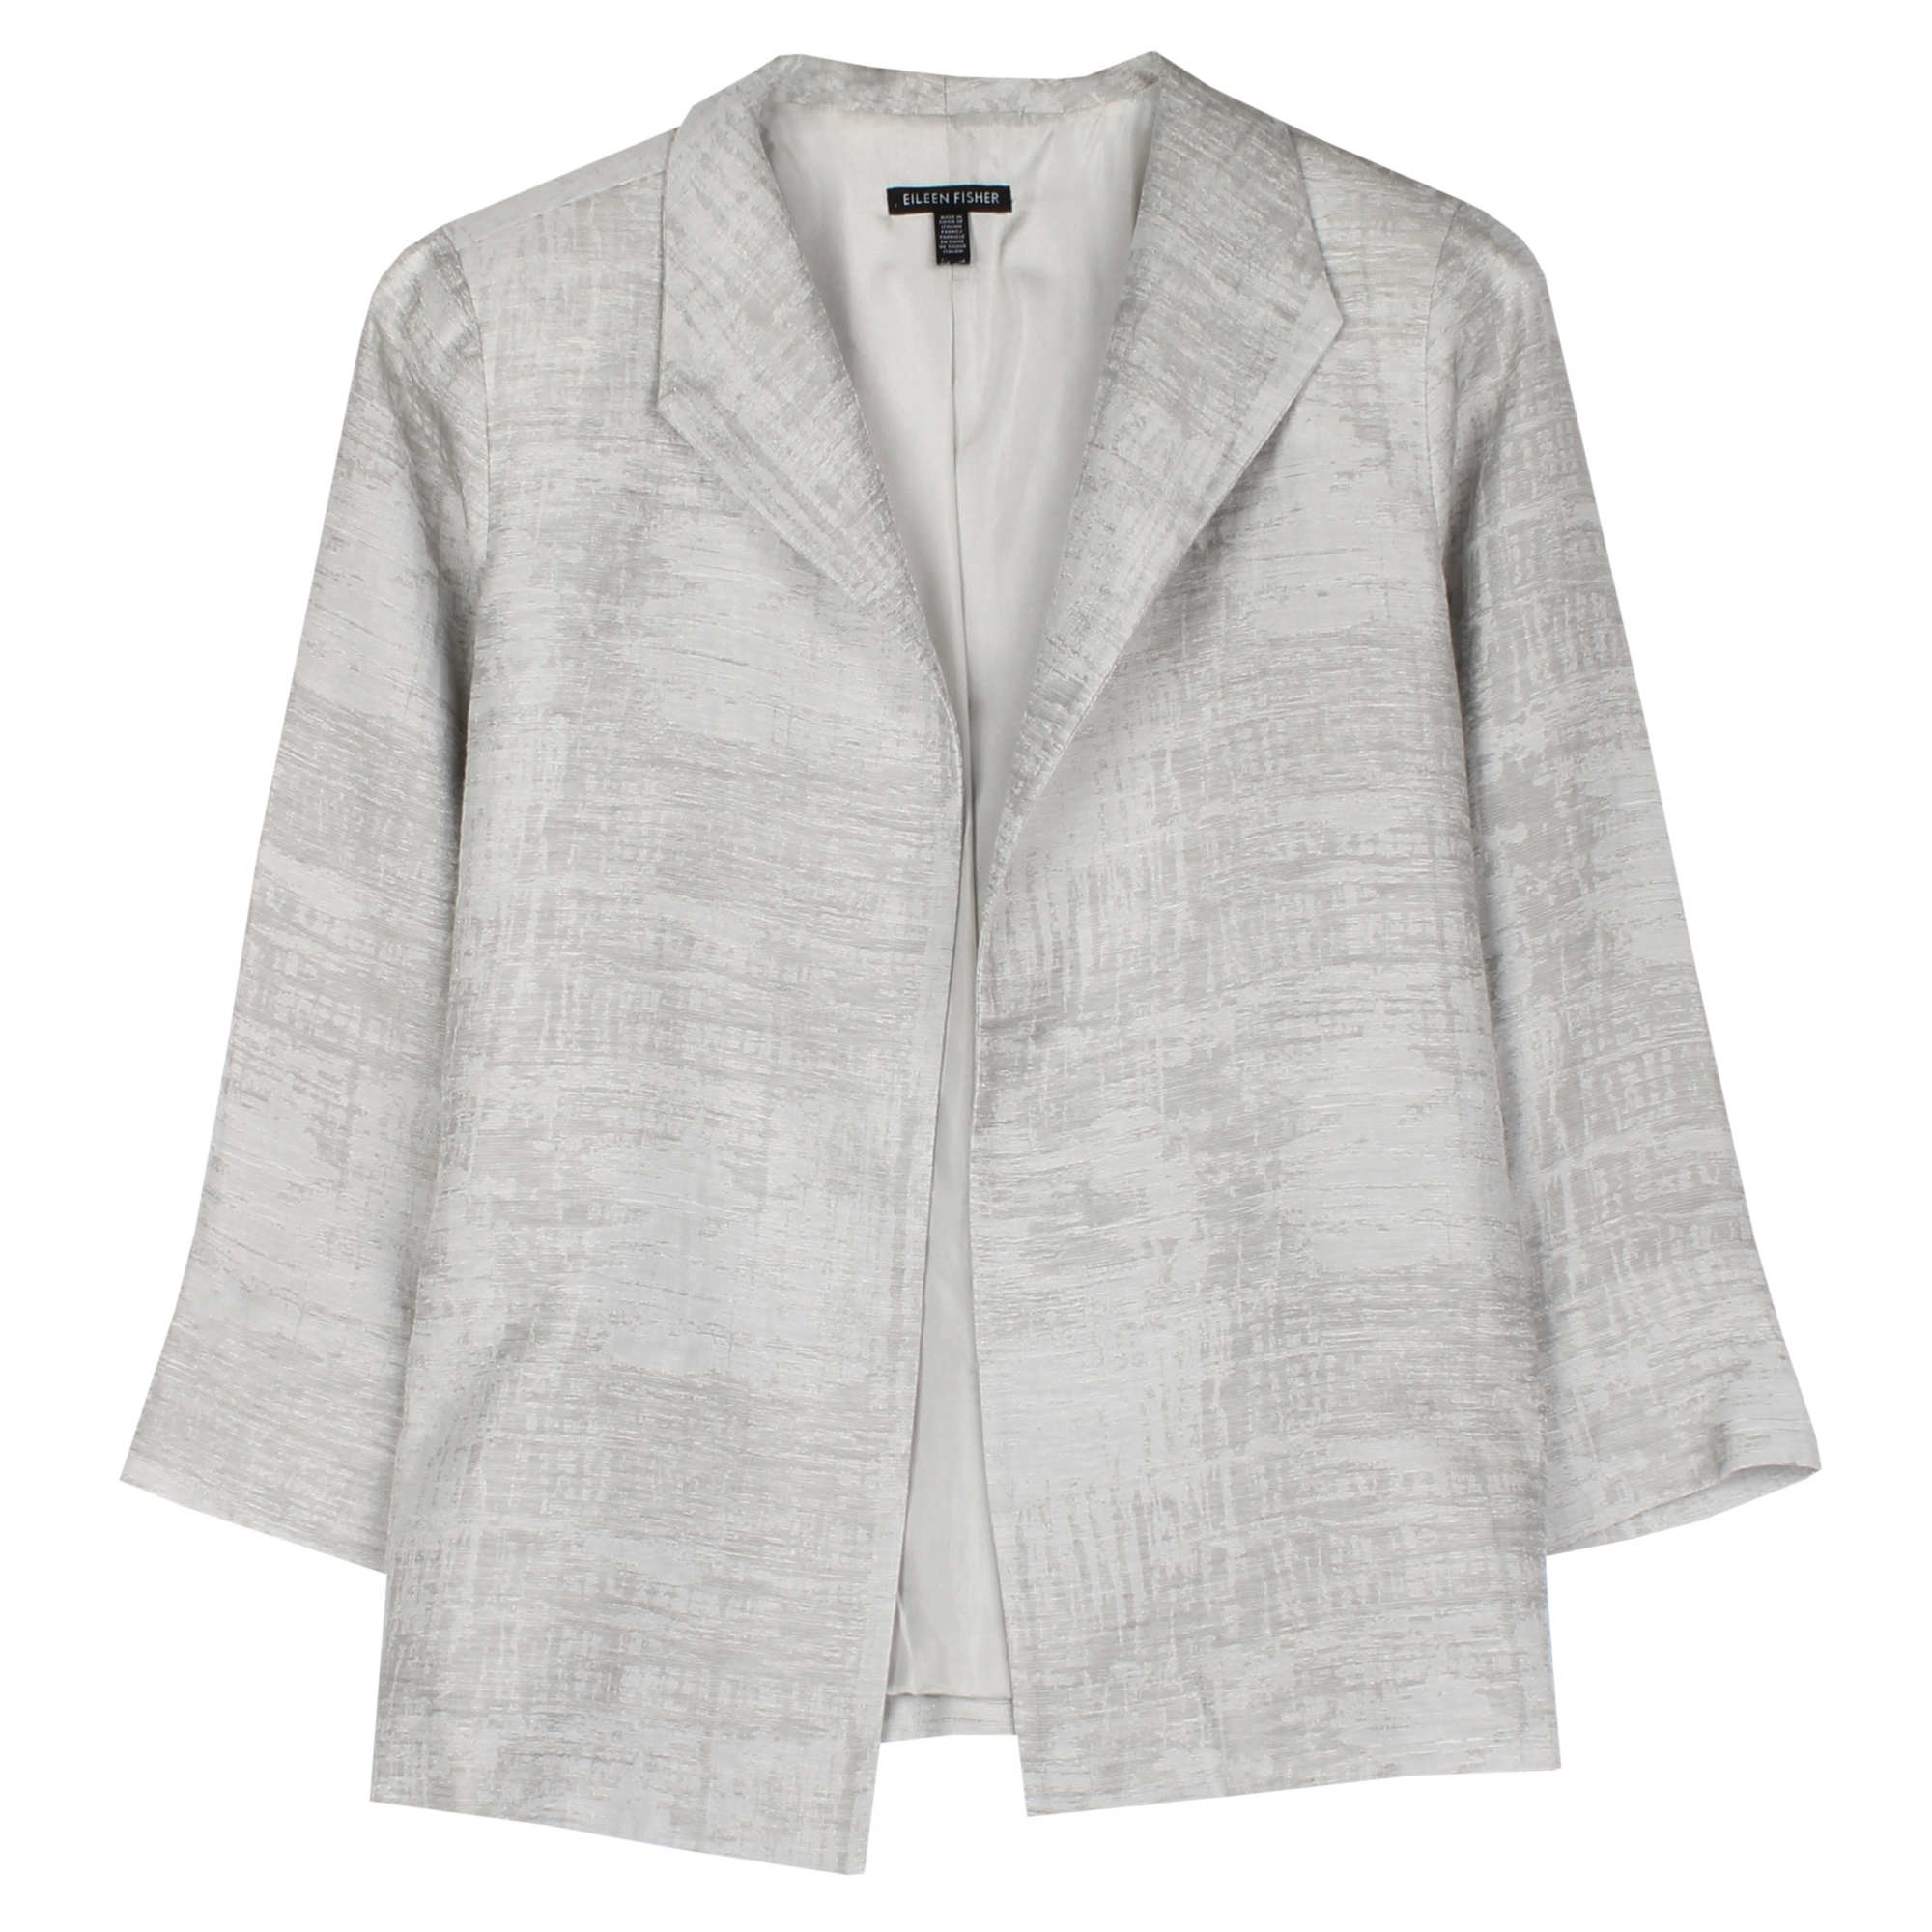 Guilded Linen Jacquard Jacket